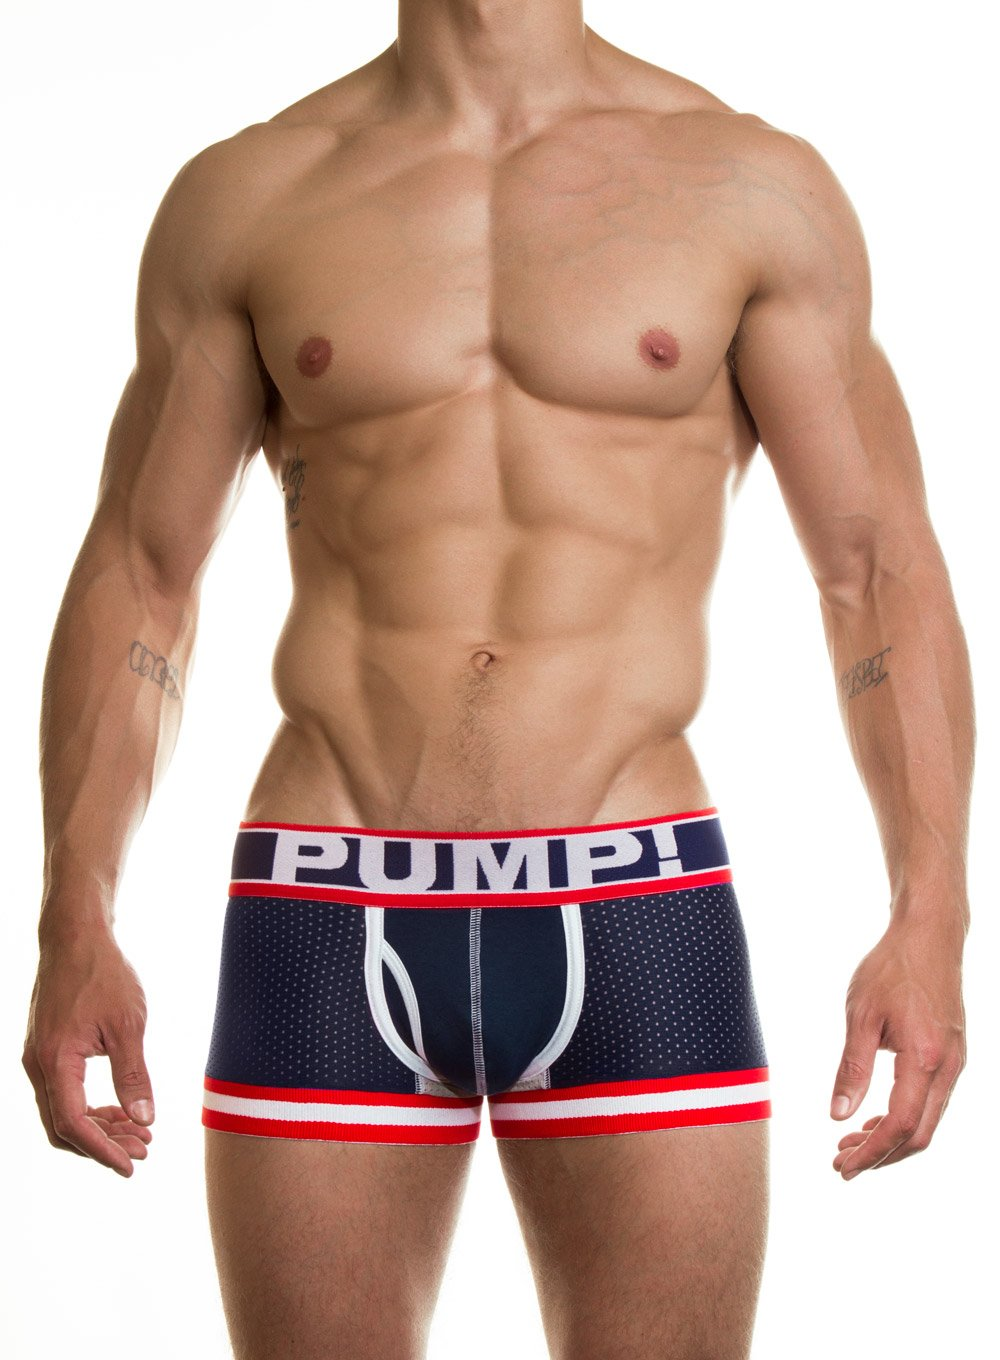 PUMP! Touchdown Big League Boxer